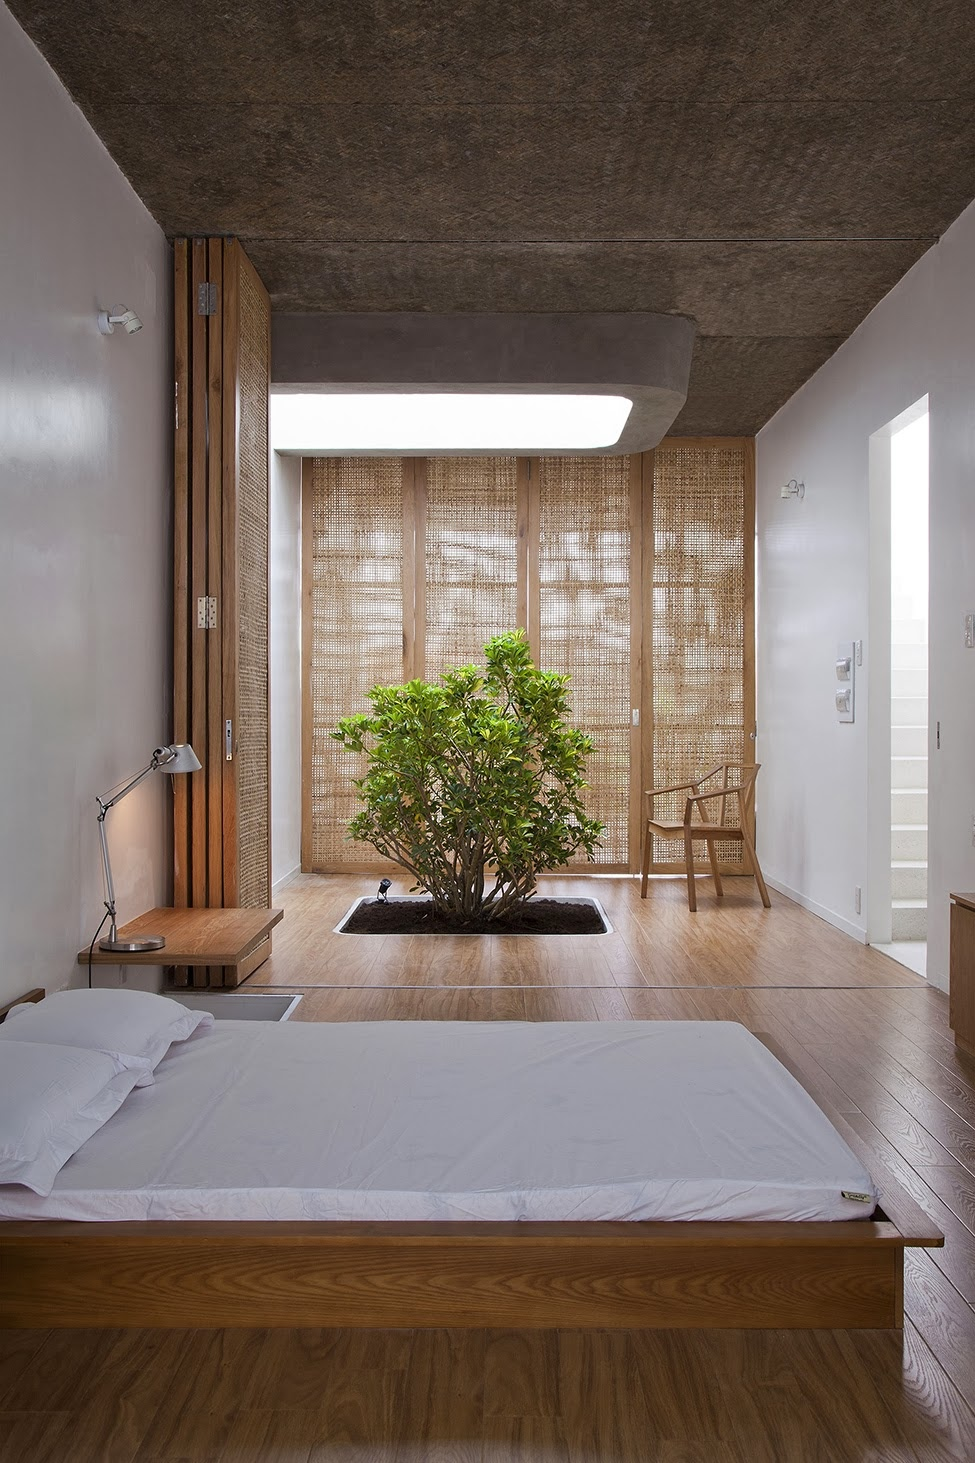 Zen inspired interior design - Decoration zen et nature ...